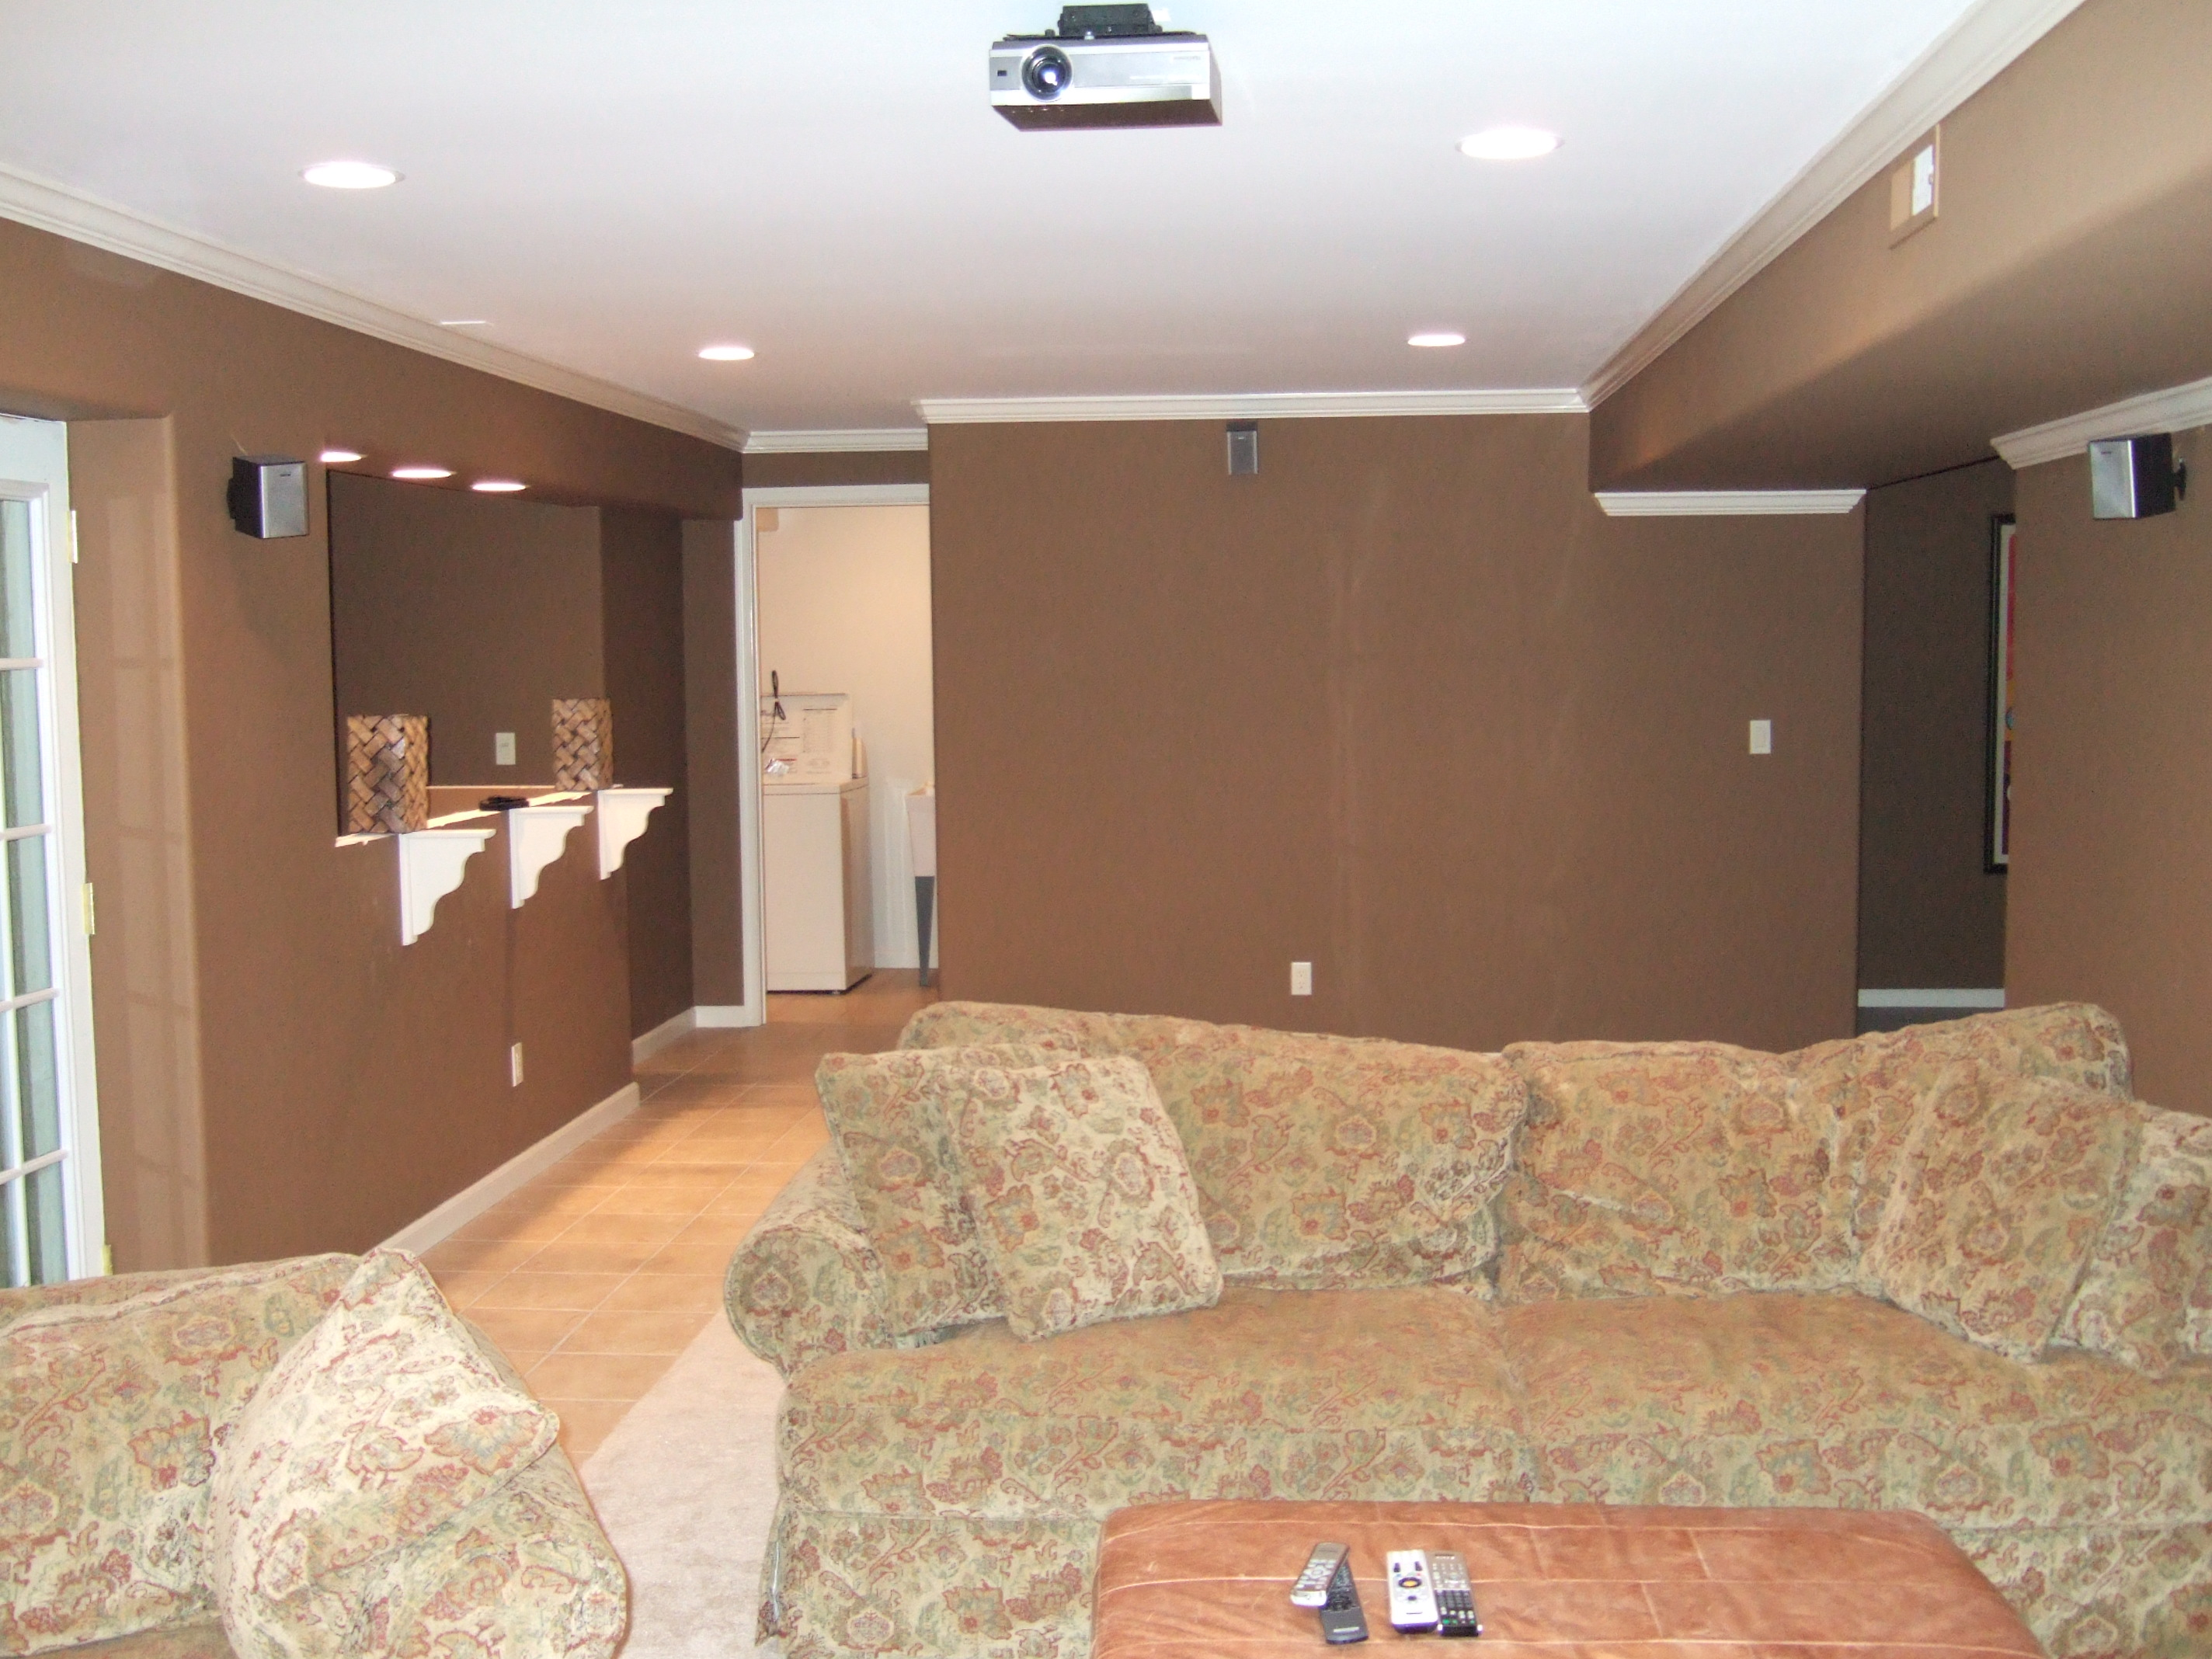 Finished basement remodeling fairfax manassas pictures - Basement ideas for small spaces pict ...